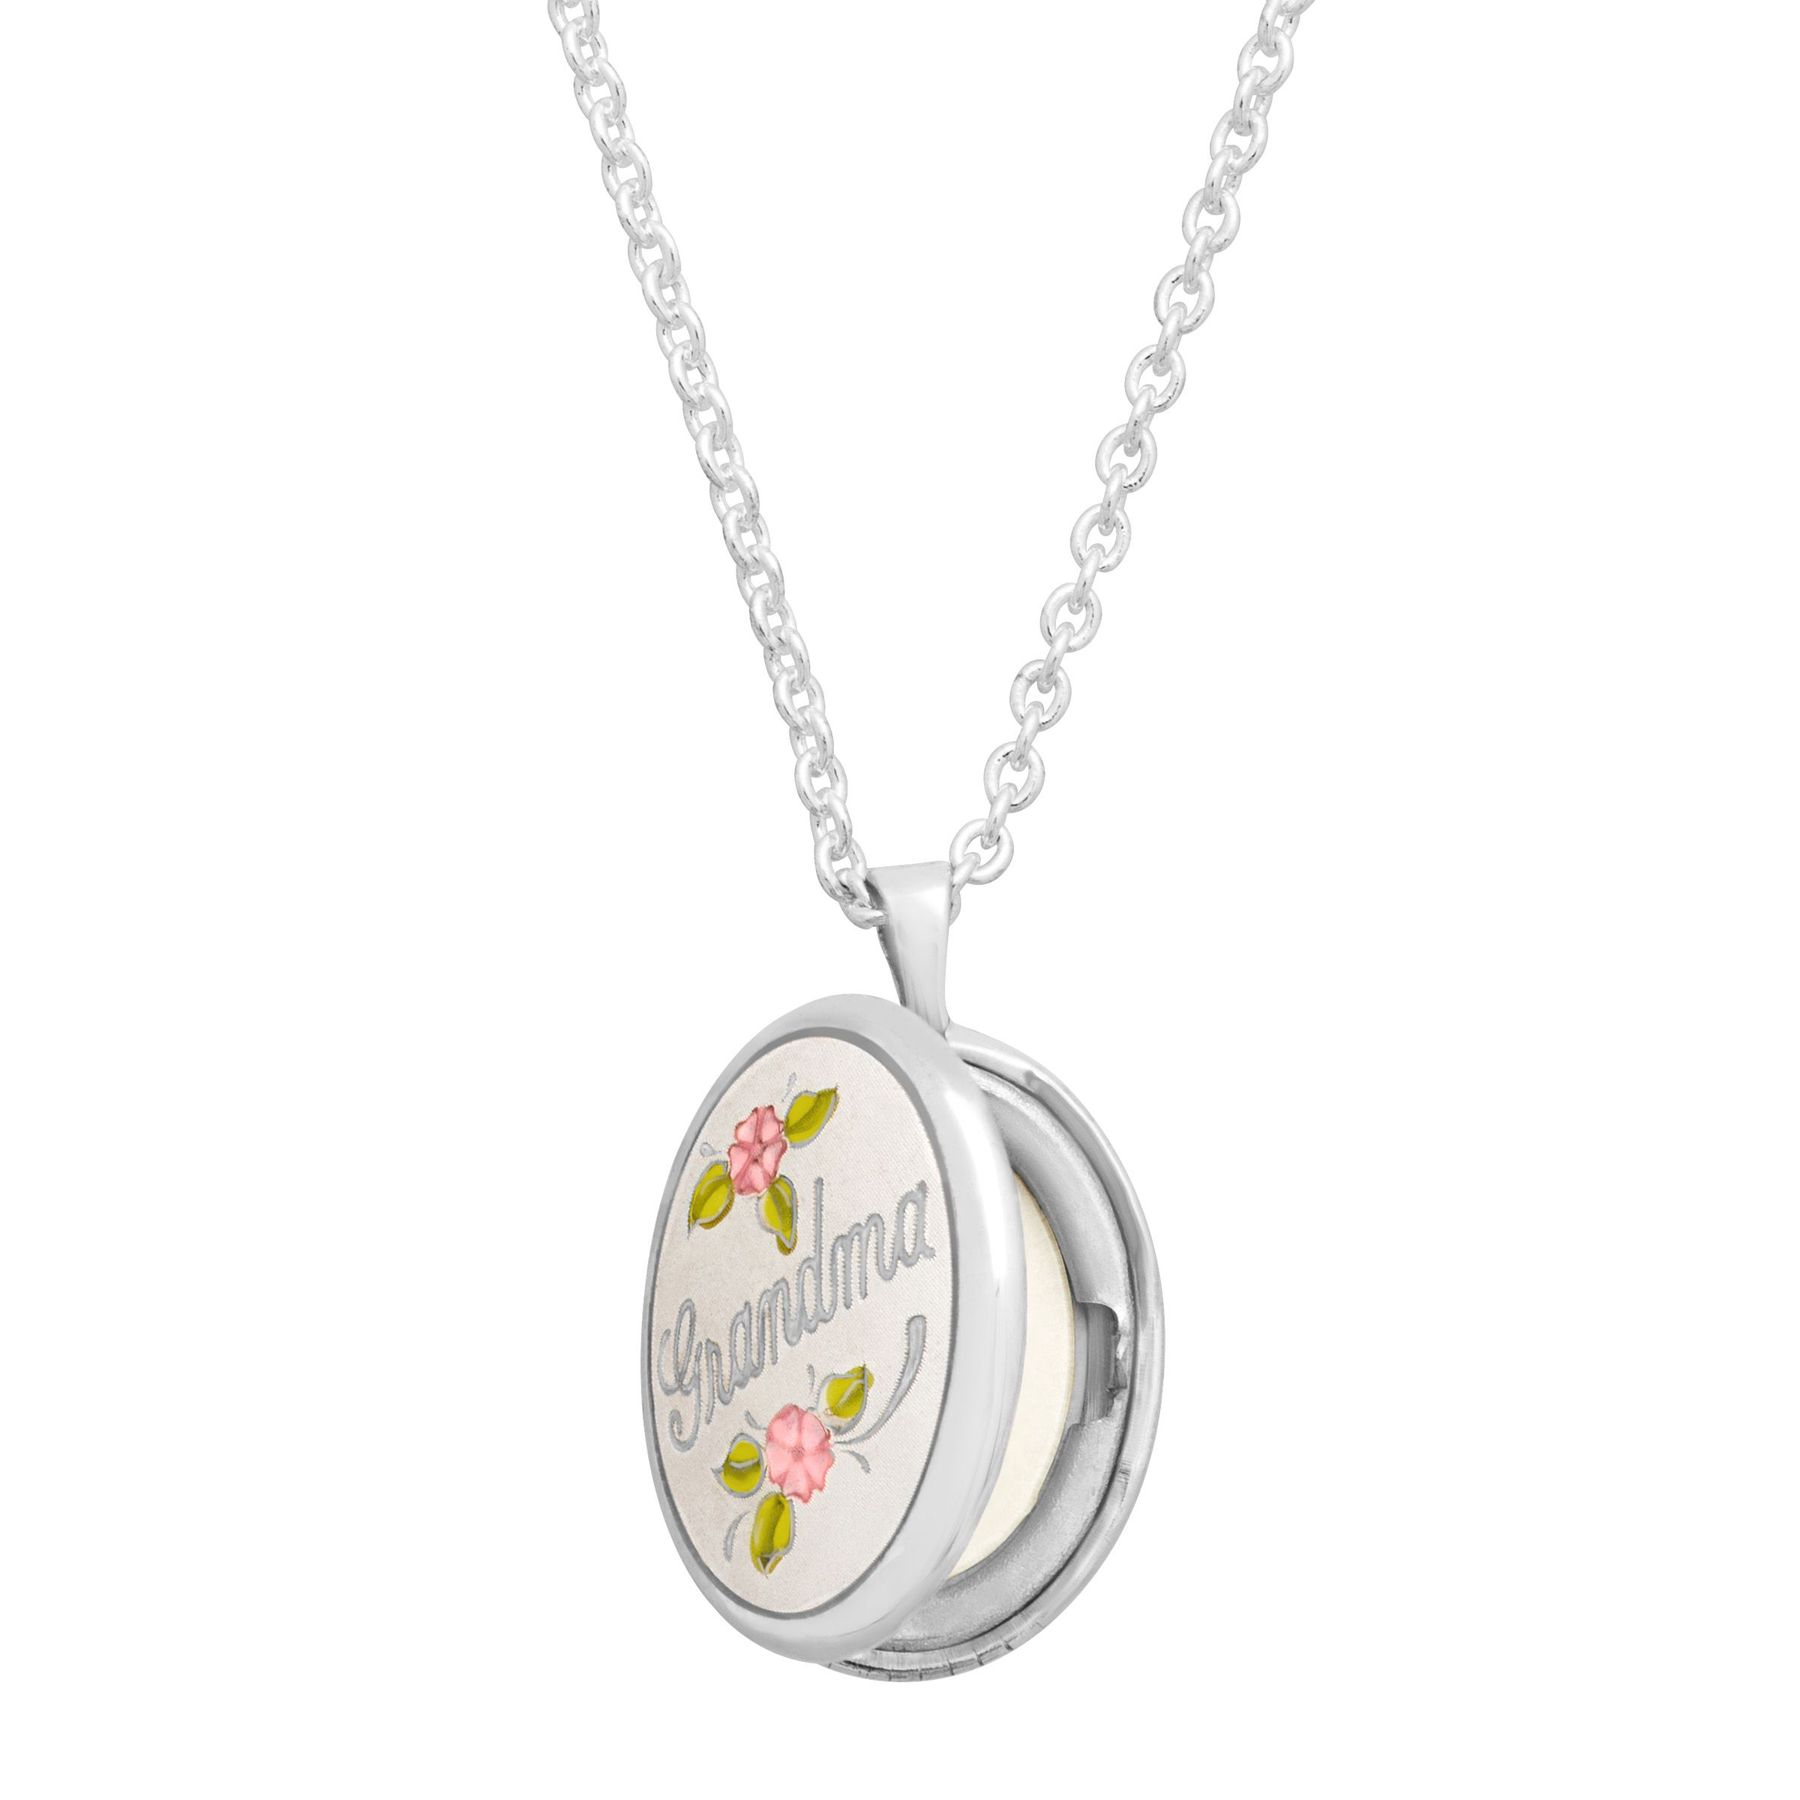 necklace uec lockets present past jewelry grandma heartpendant heart grandmother split silver pbx granddaughter bling and set